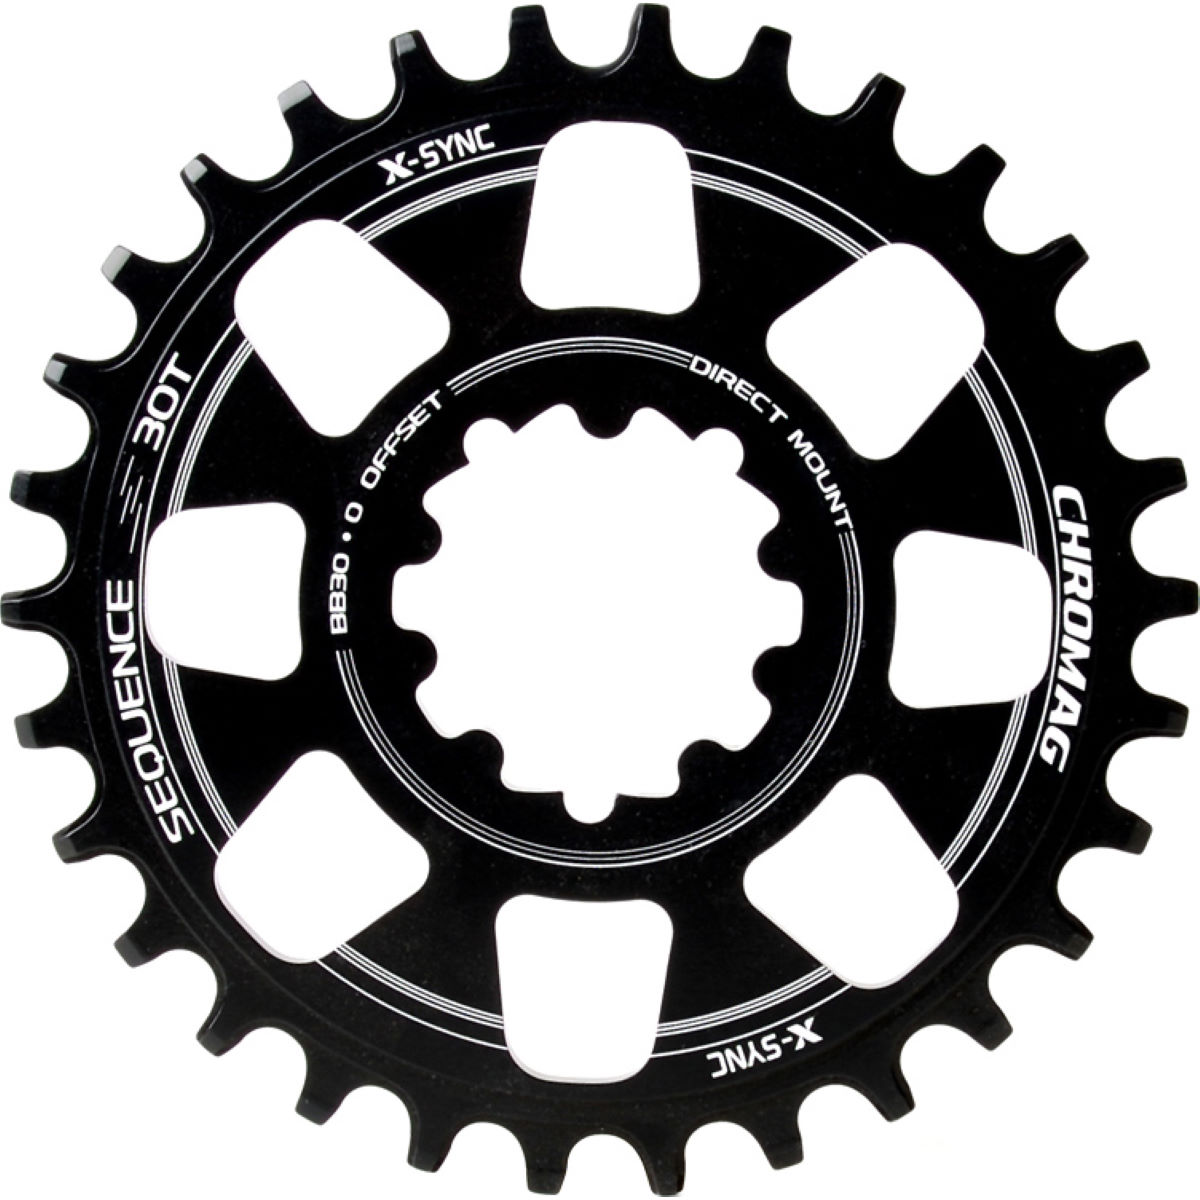 Chromag Sequence BB30 Direct Mount Chainring - Platos